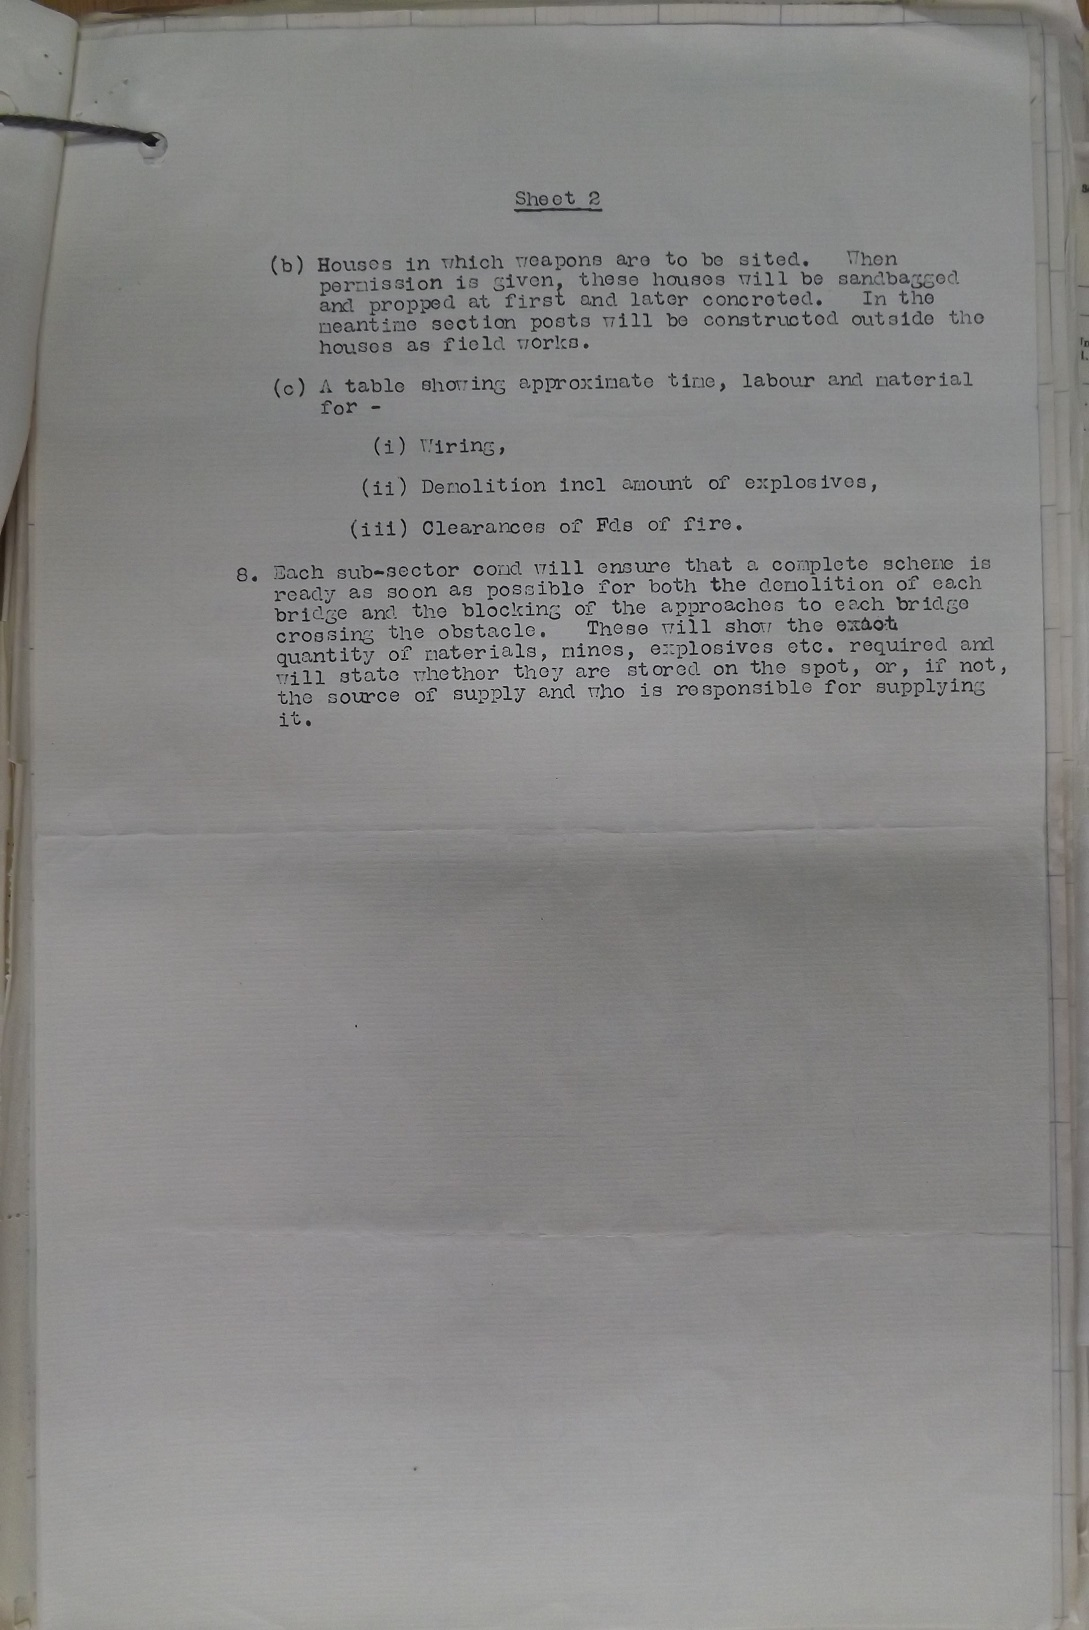 11 Inf Bde Operation Order No 3 19 Oct 1939 pge 5